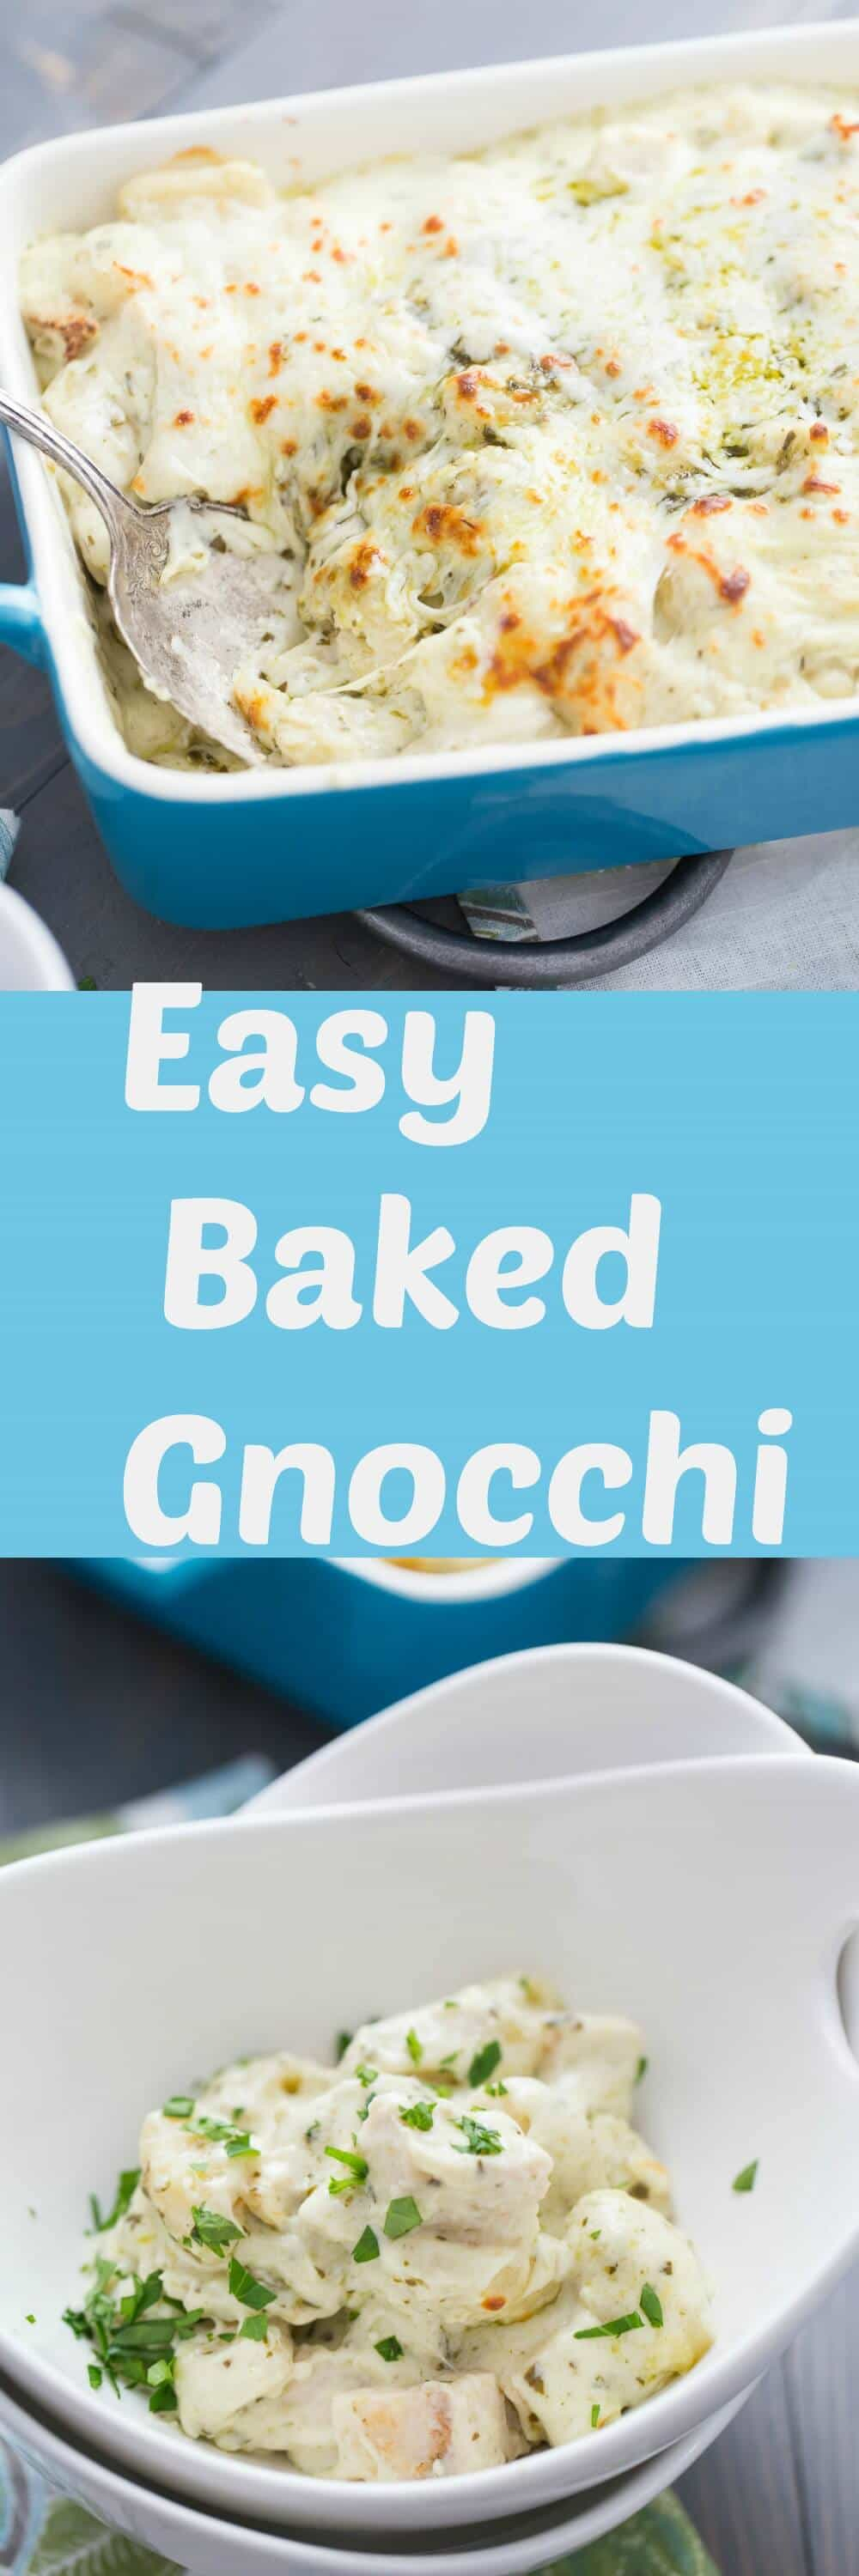 This easy gnocchi recipe is the best! Frozen gnocchi makes it simple as it is added to three kinds of cheese, chicken and pesto! Dinner made simple! lemonsforlulu.com